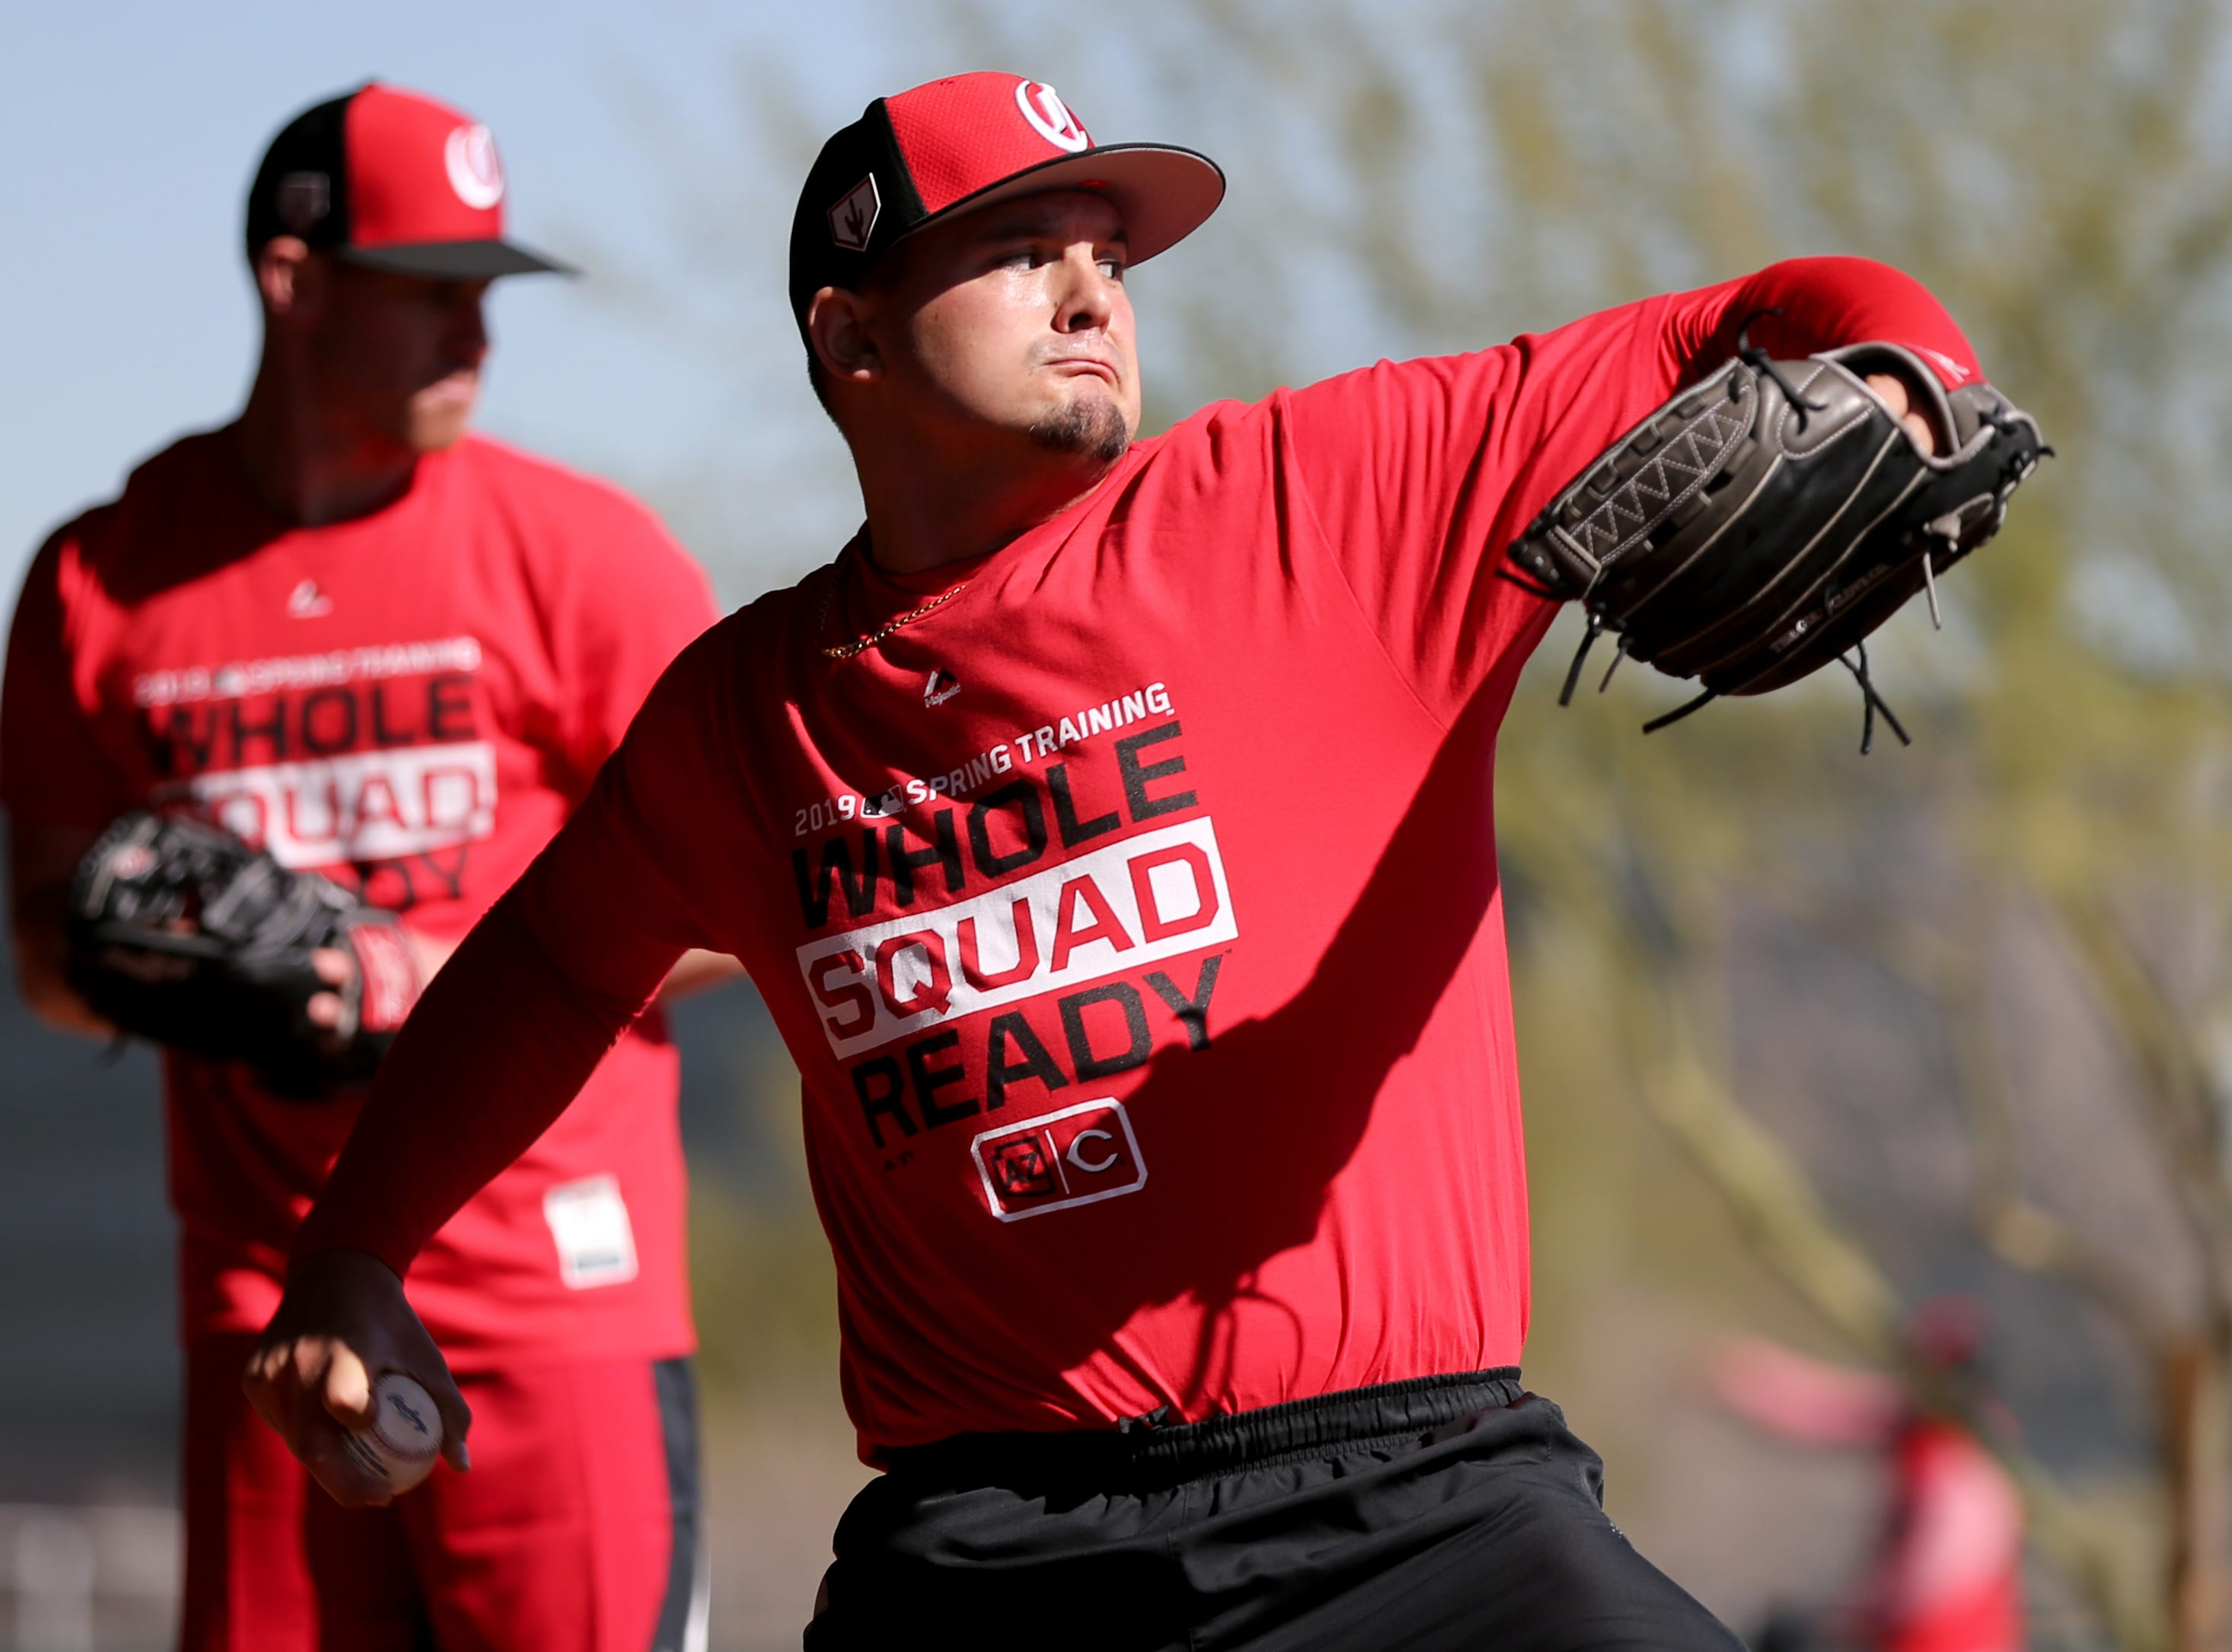 Cincinnati Reds pitcher Sal Romano delivers as he throws in the bullpen on report day for pitchers and catchers, Tuesday, Feb. 12, 2019, at the Cincinnati Reds spring training facility in Goodyear, Arizona.